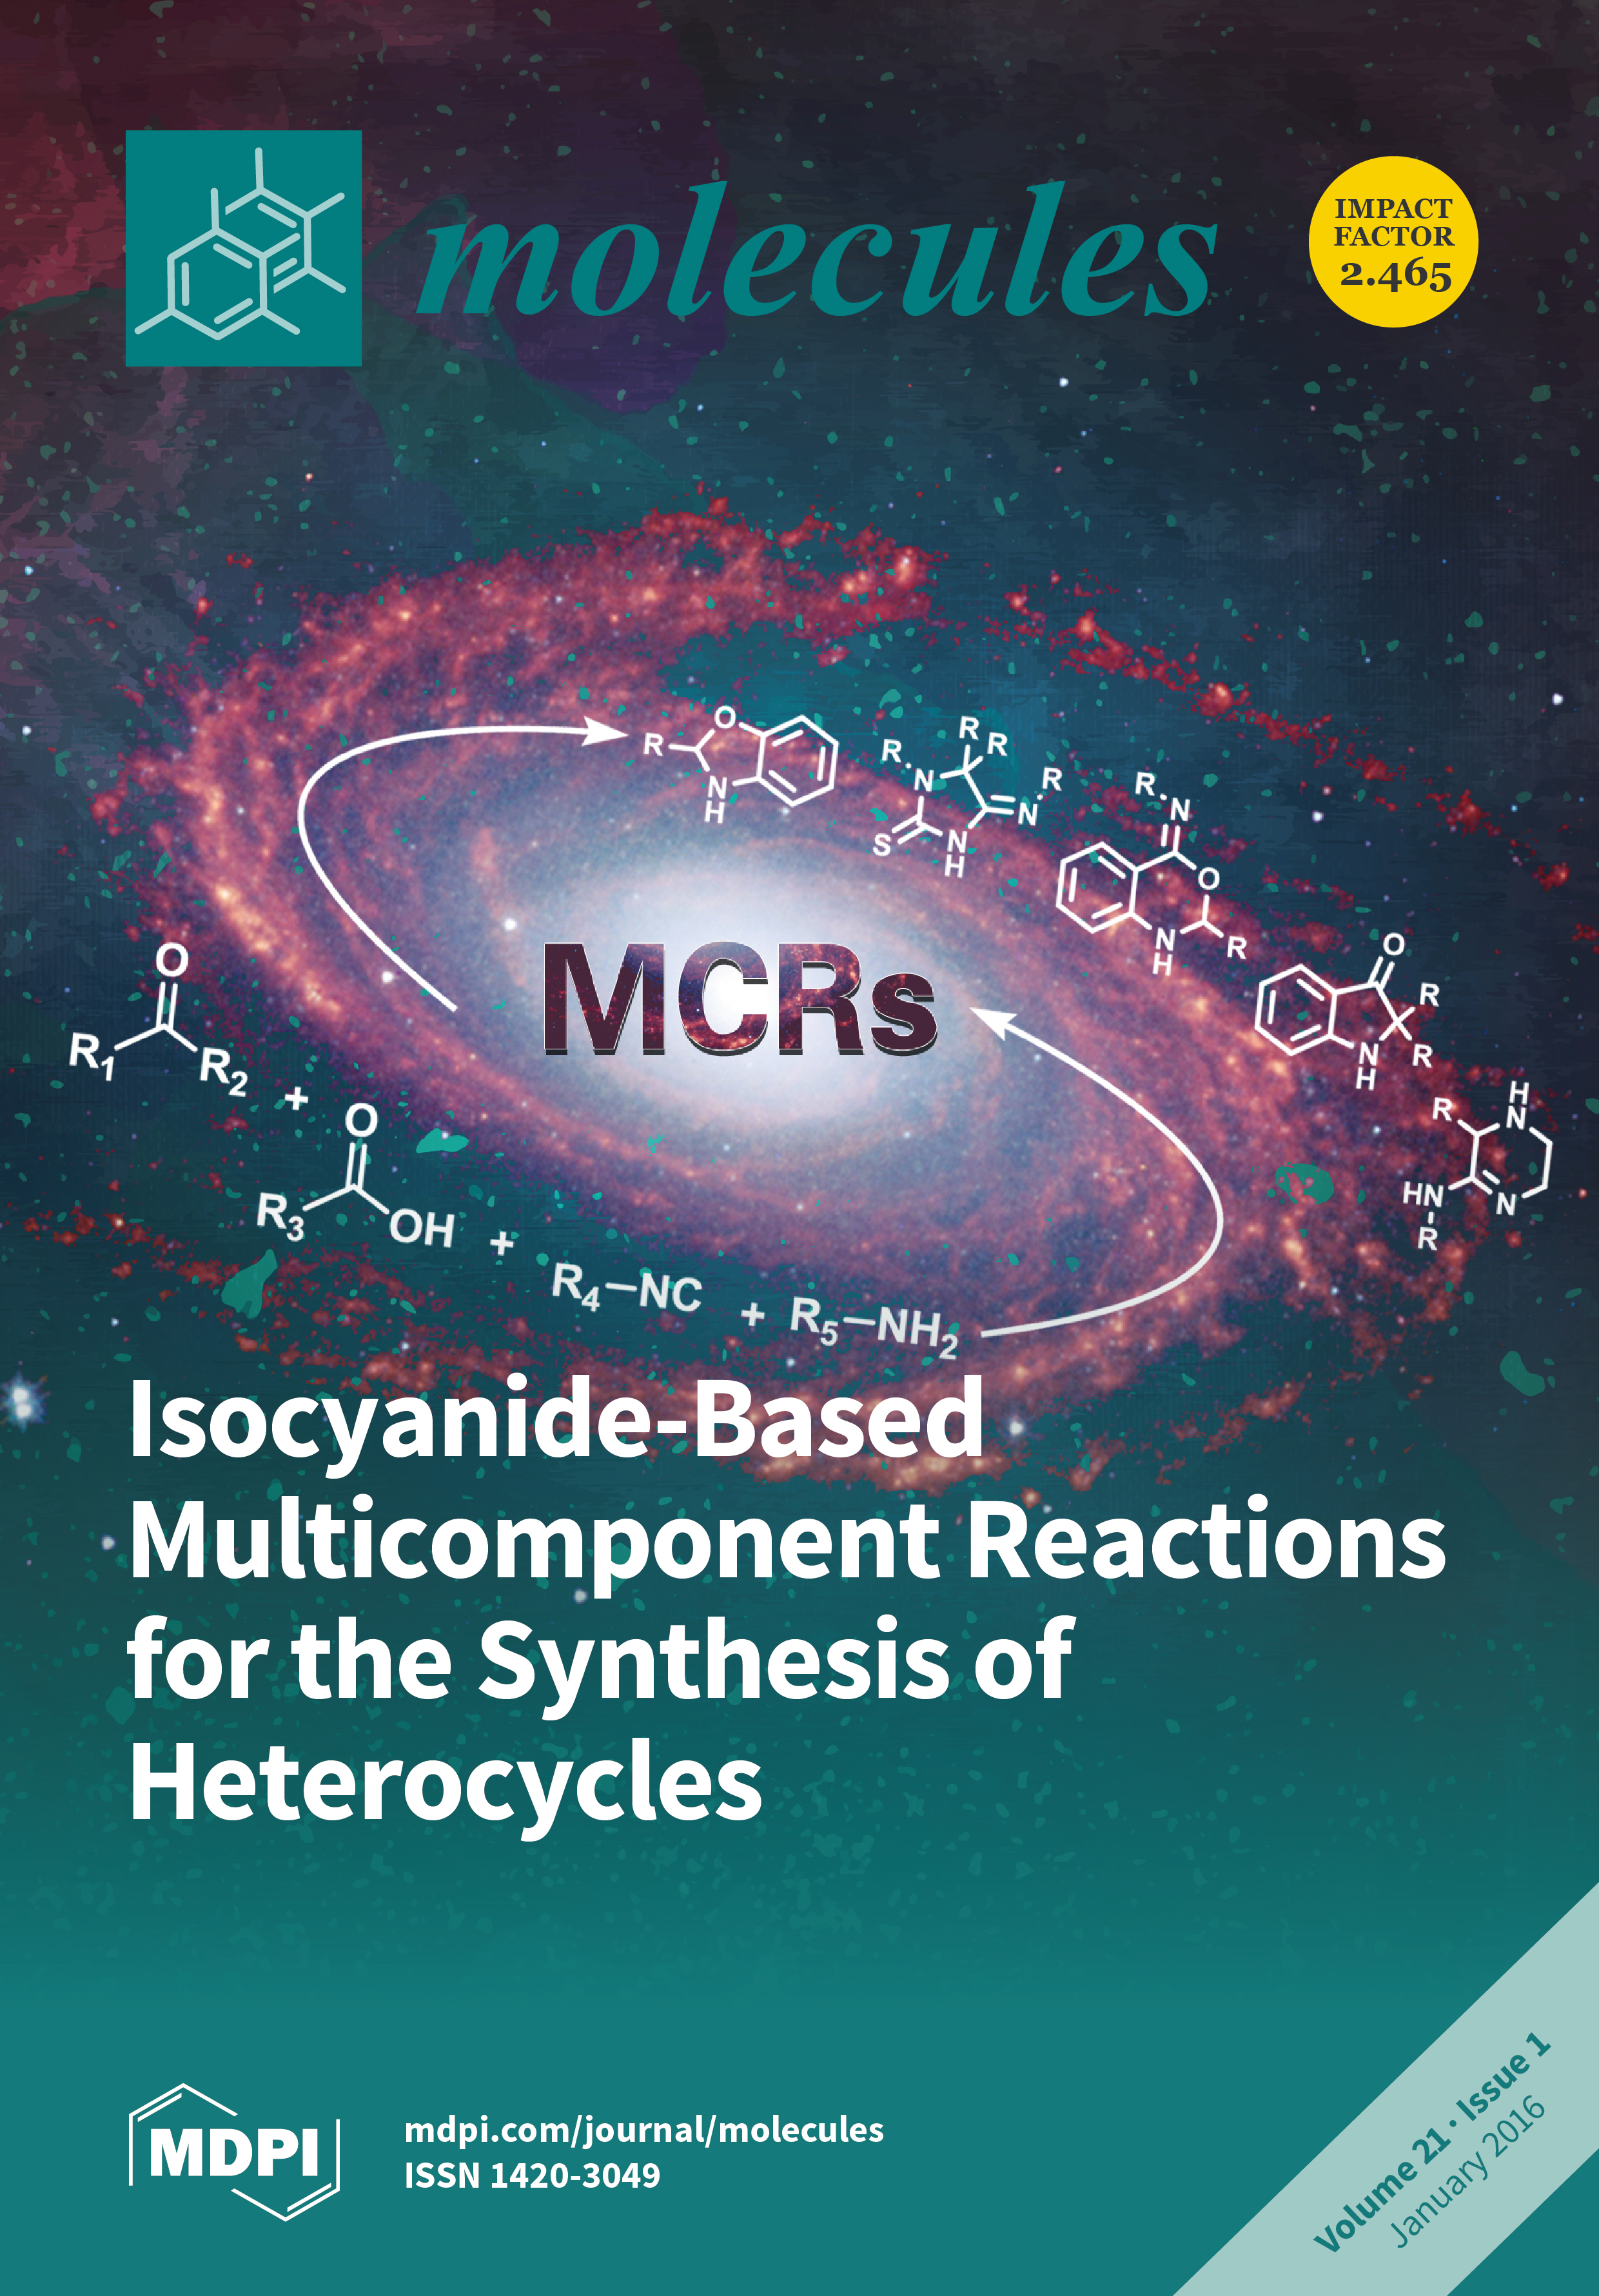 Molecules january 2016 browse articles cover story view baditri Choice Image